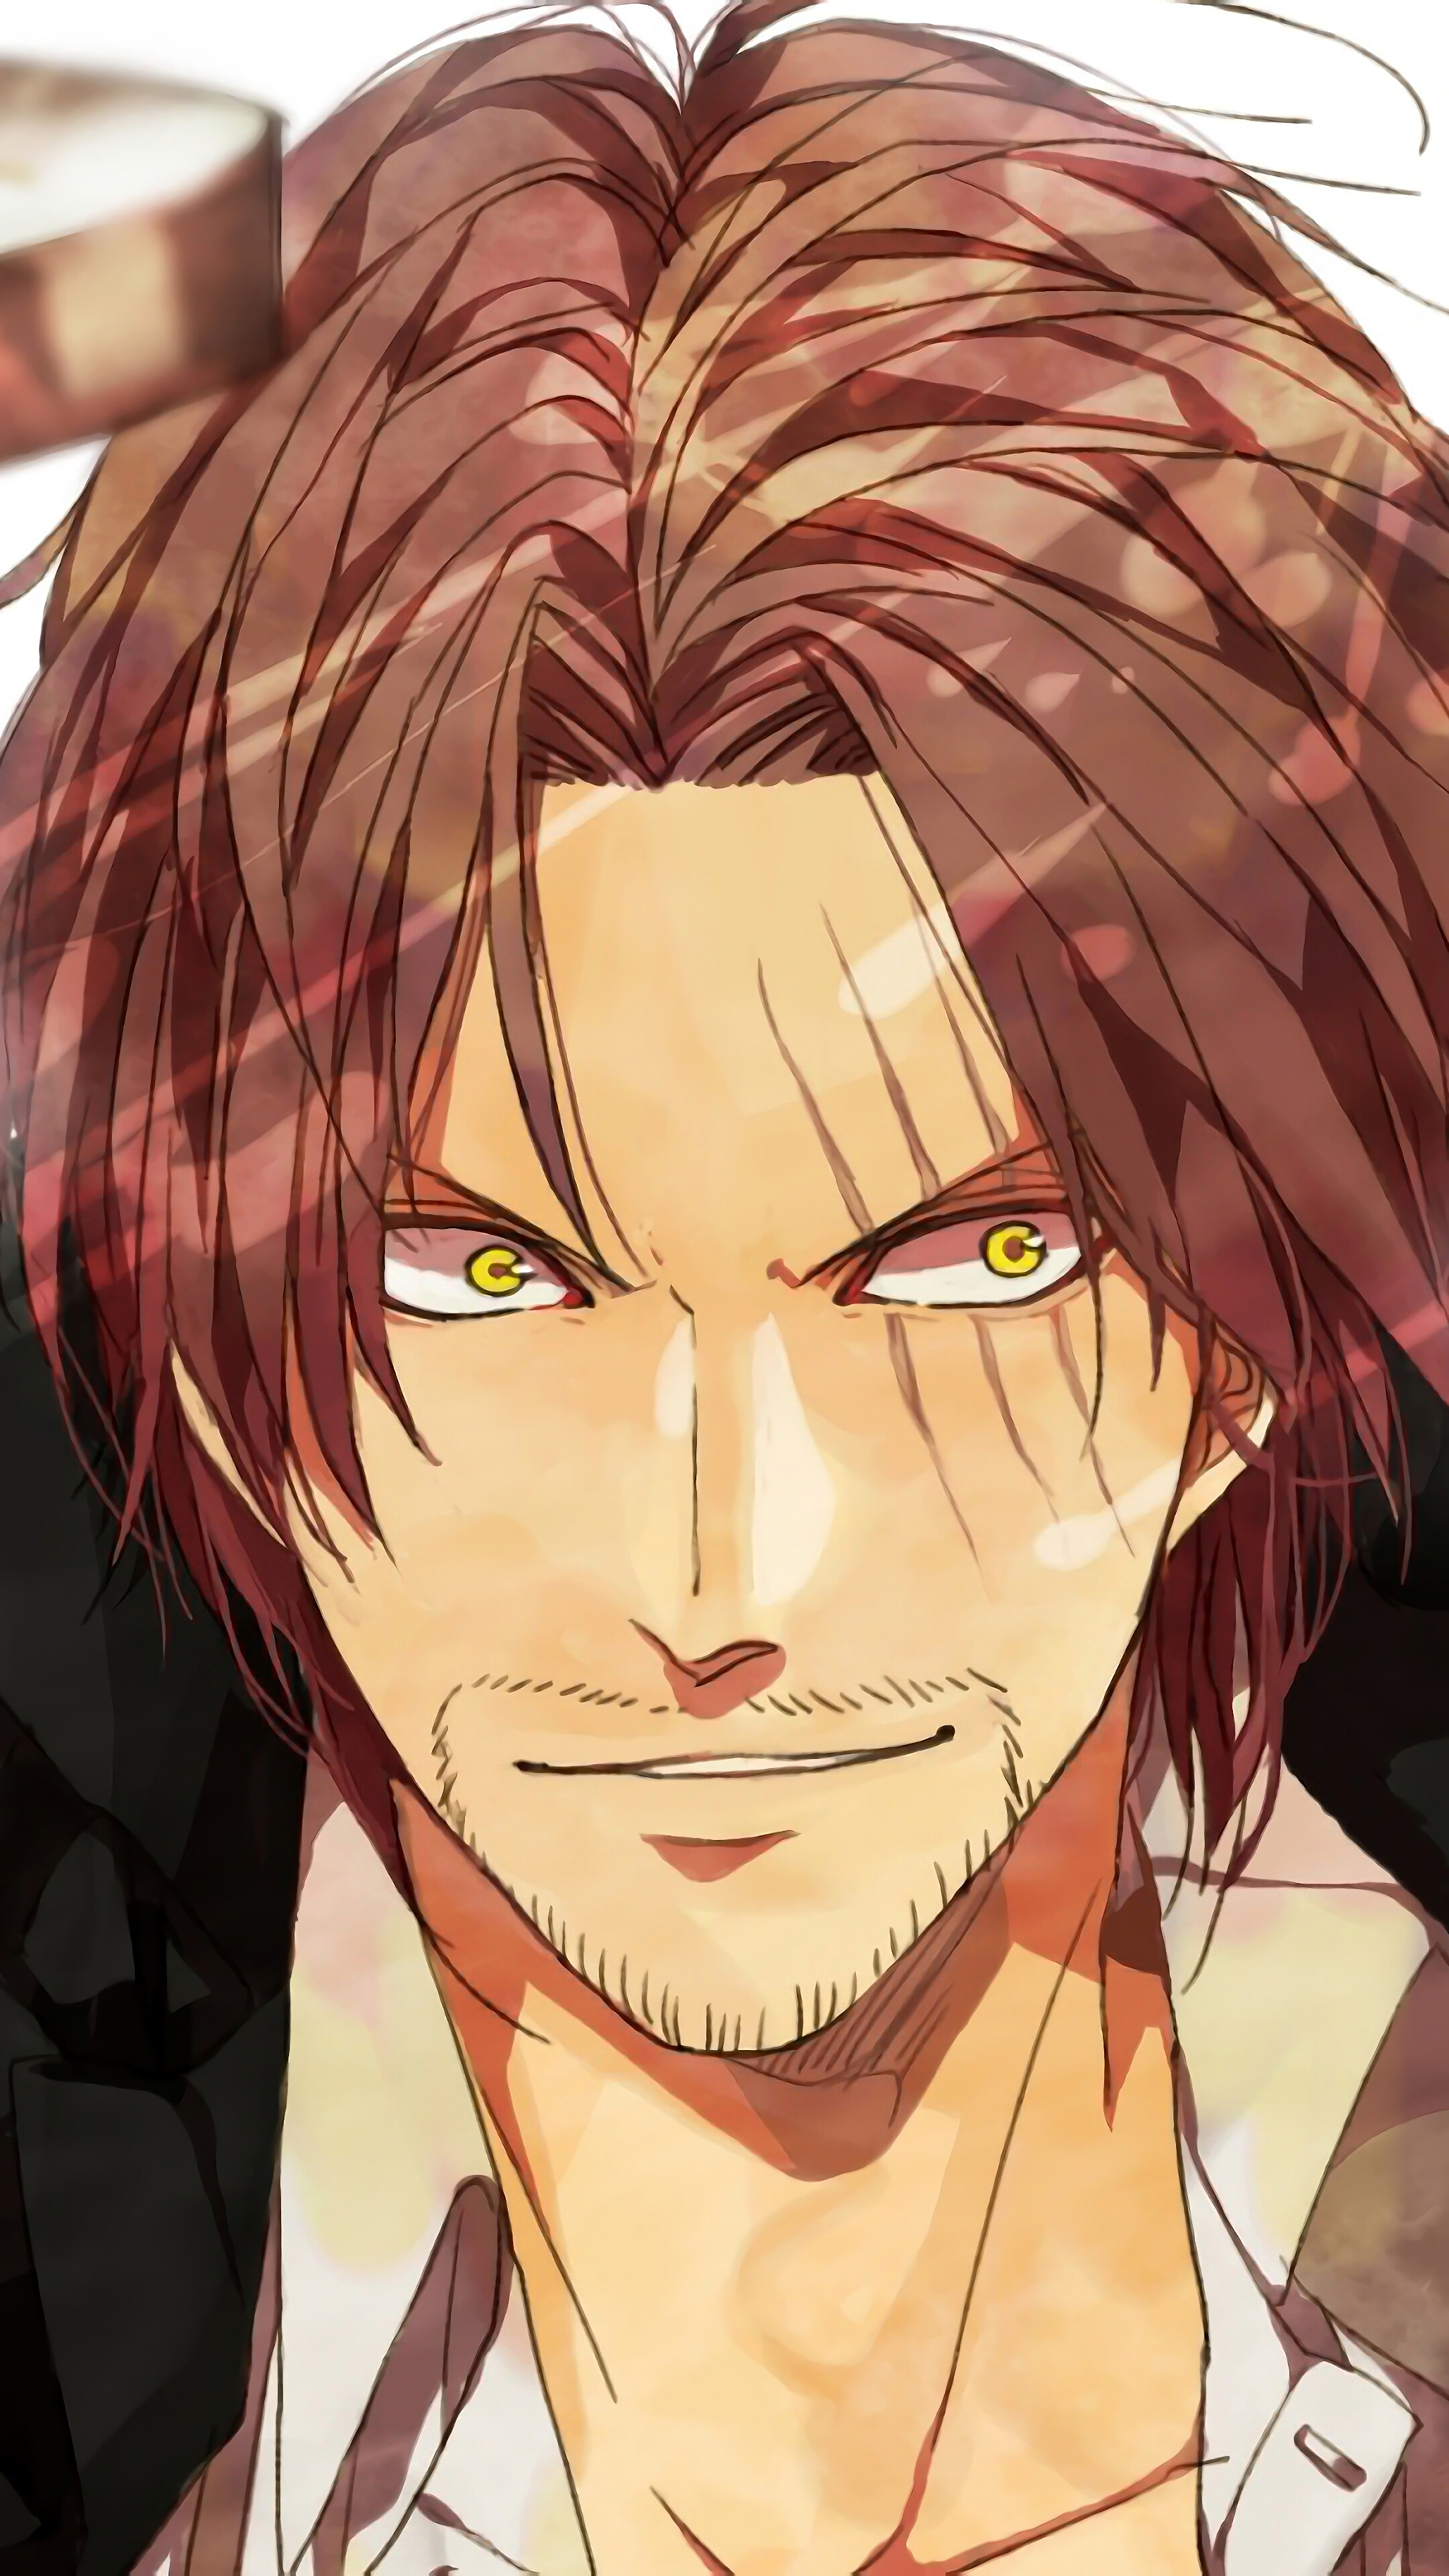 Shanks One Piece 4k Iphone 10 7 6s 6 Hd Wallpapers Shanks One Piece Hd 3208824 Hd Wallpaper Backgrounds Download